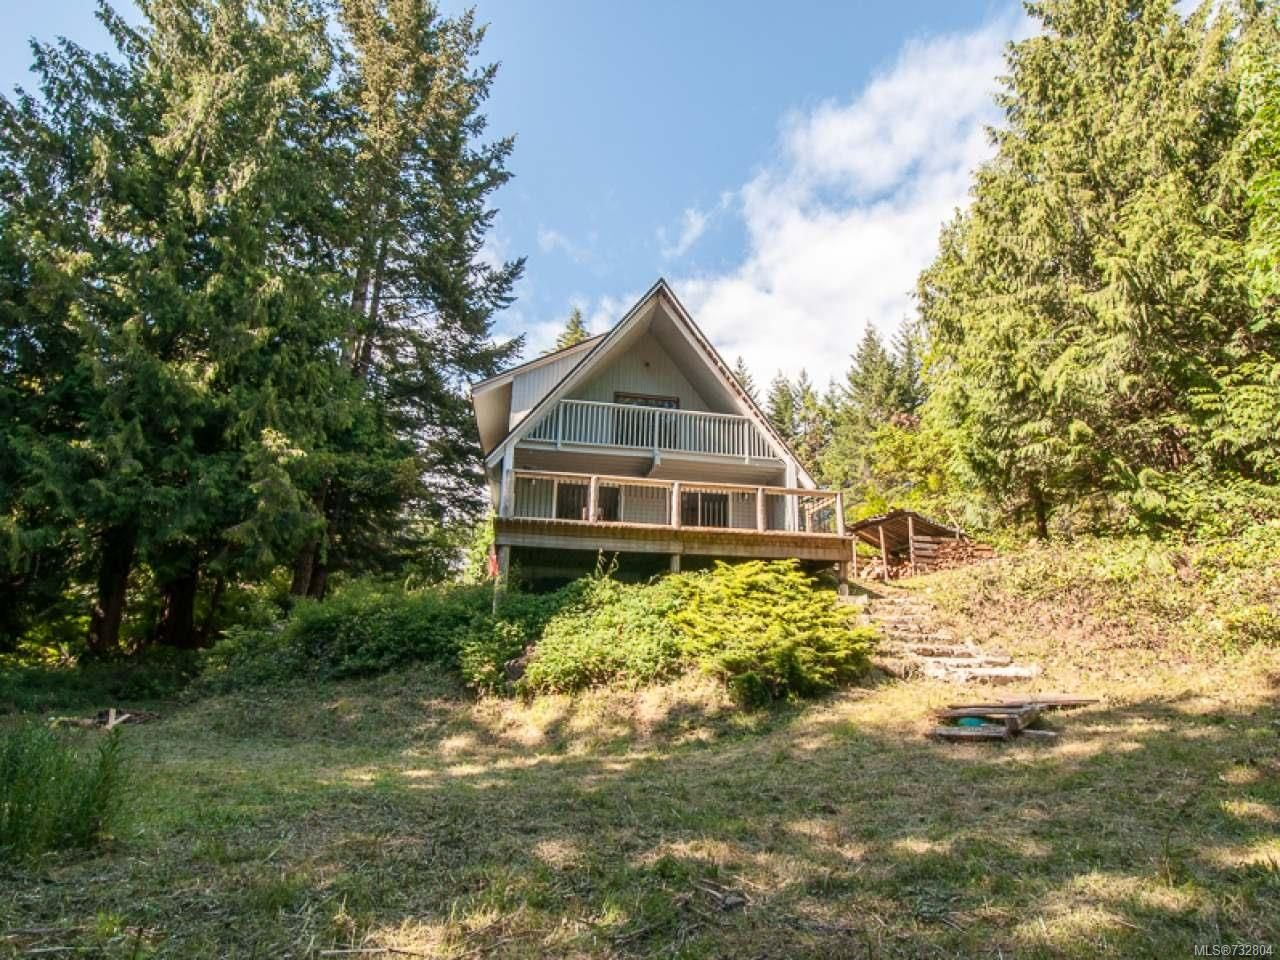 Main Photo: 2880 Transtide Dr in NANOOSE BAY: PQ Nanoose House for sale (Parksville/Qualicum)  : MLS®# 732804